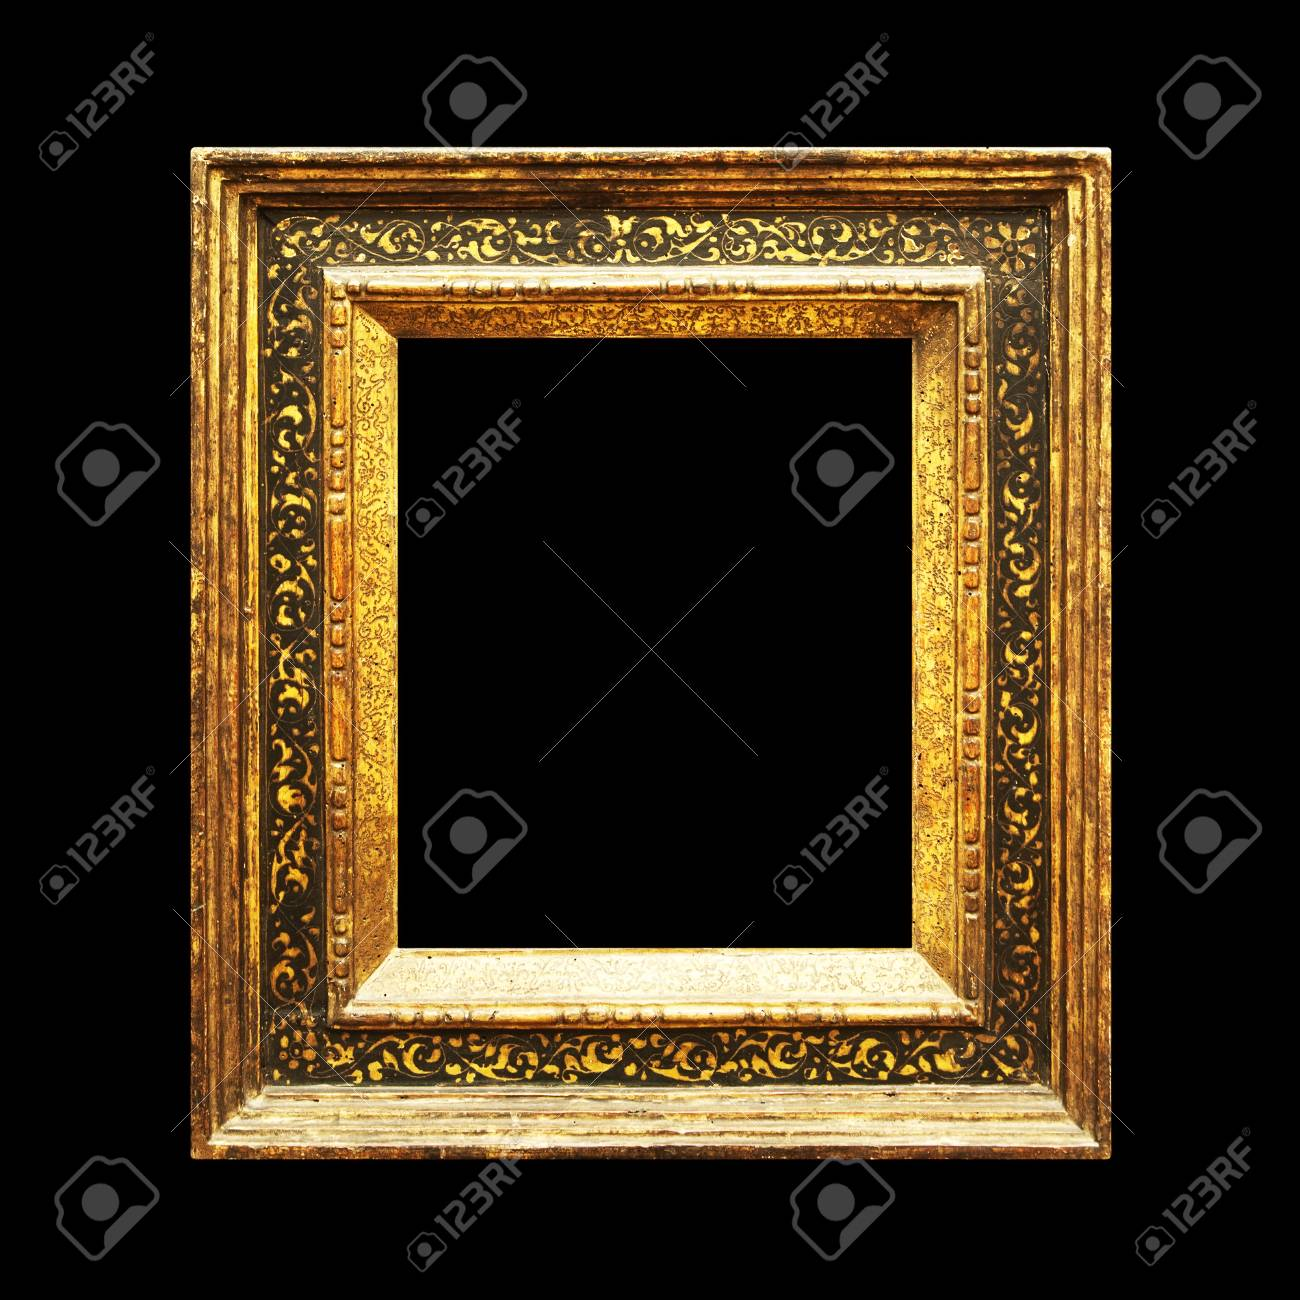 Rustic Old Ornate Frame Isolated On Black Background Stock Photo